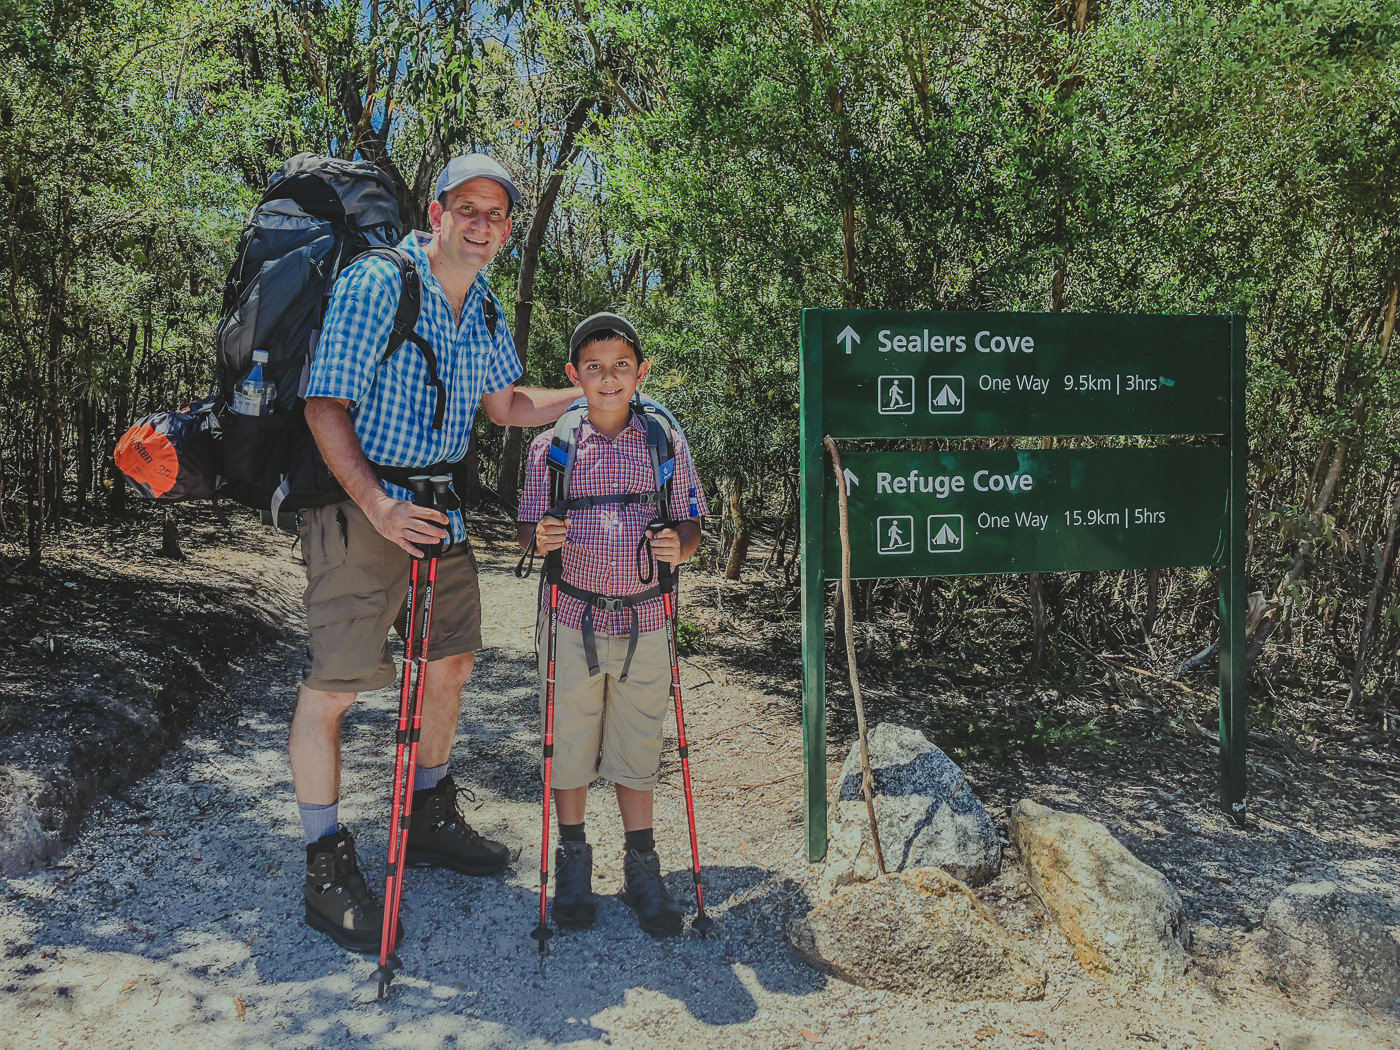 Start of the hike to Sealers Cove in Wilsons Prom National Park - Adventures near Melbourne